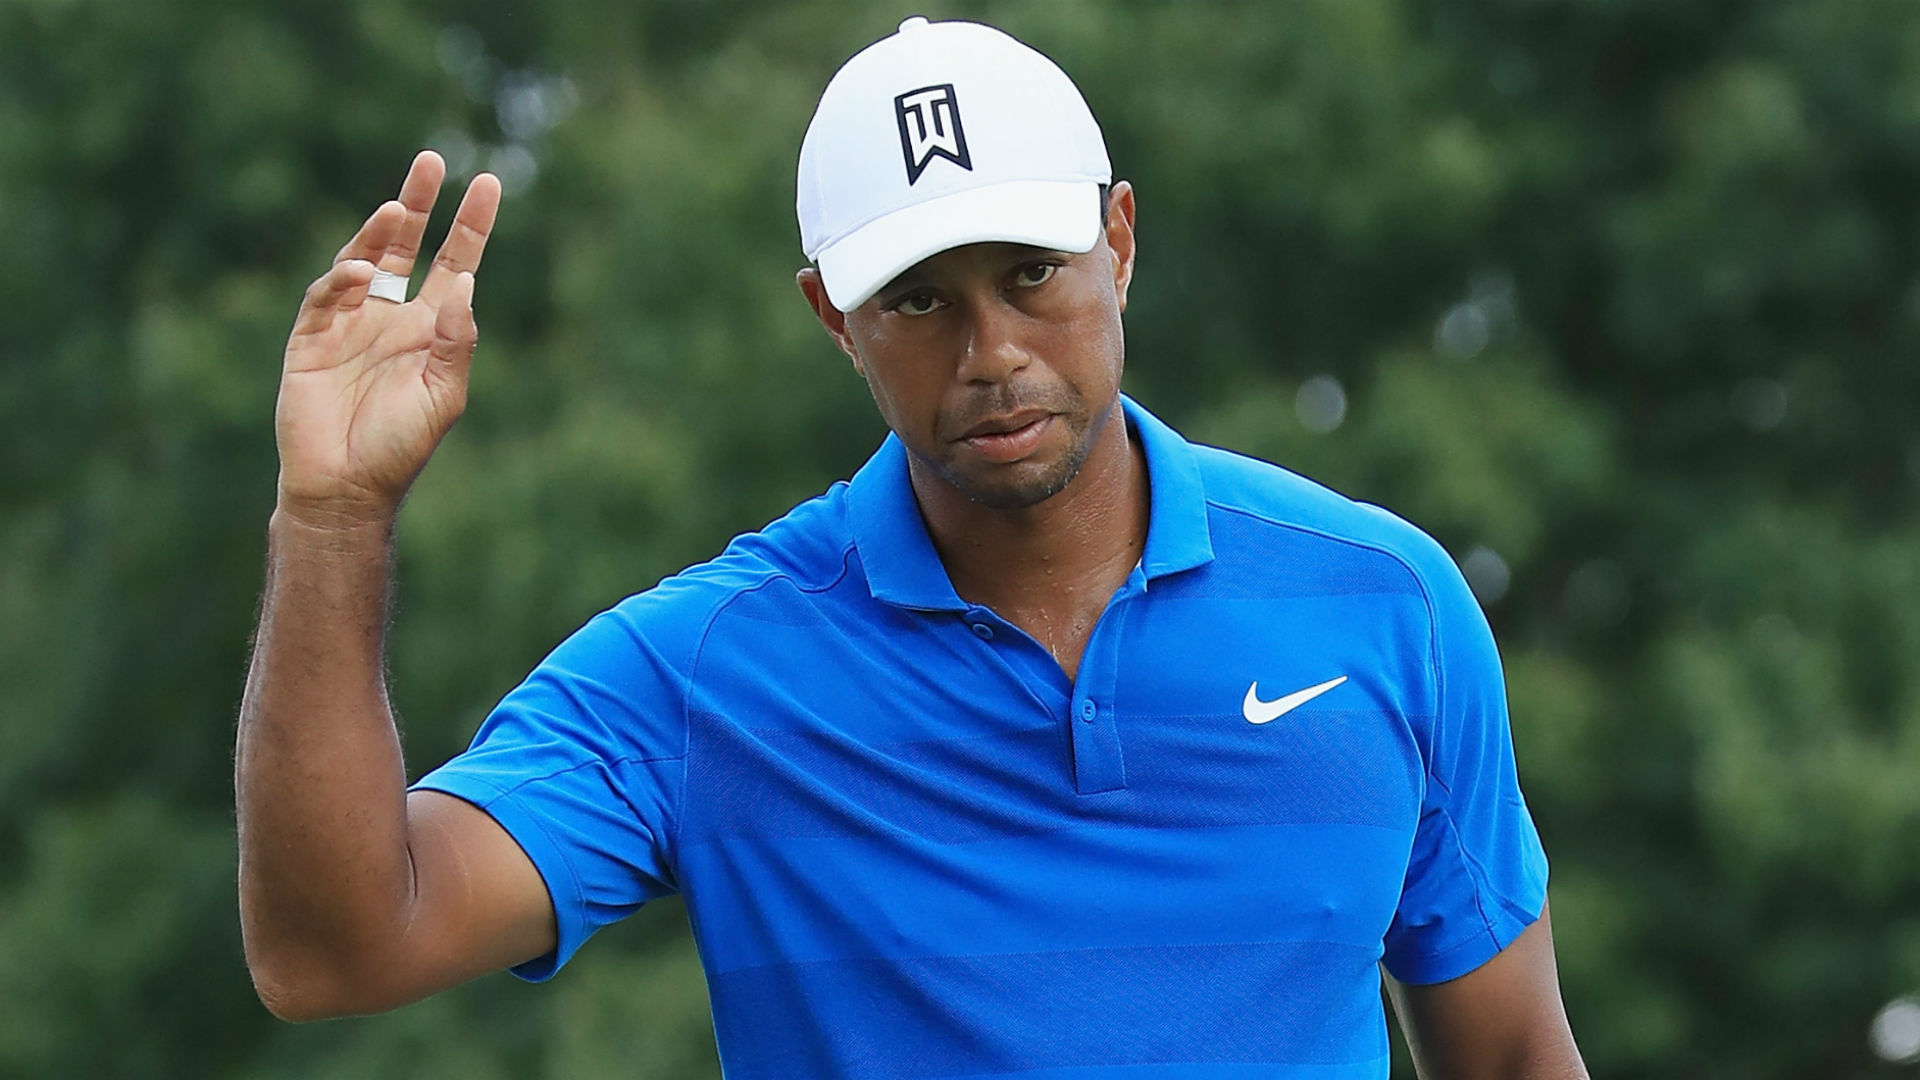 Tiger Woods wins Tour Championship, picks up first title since 2013